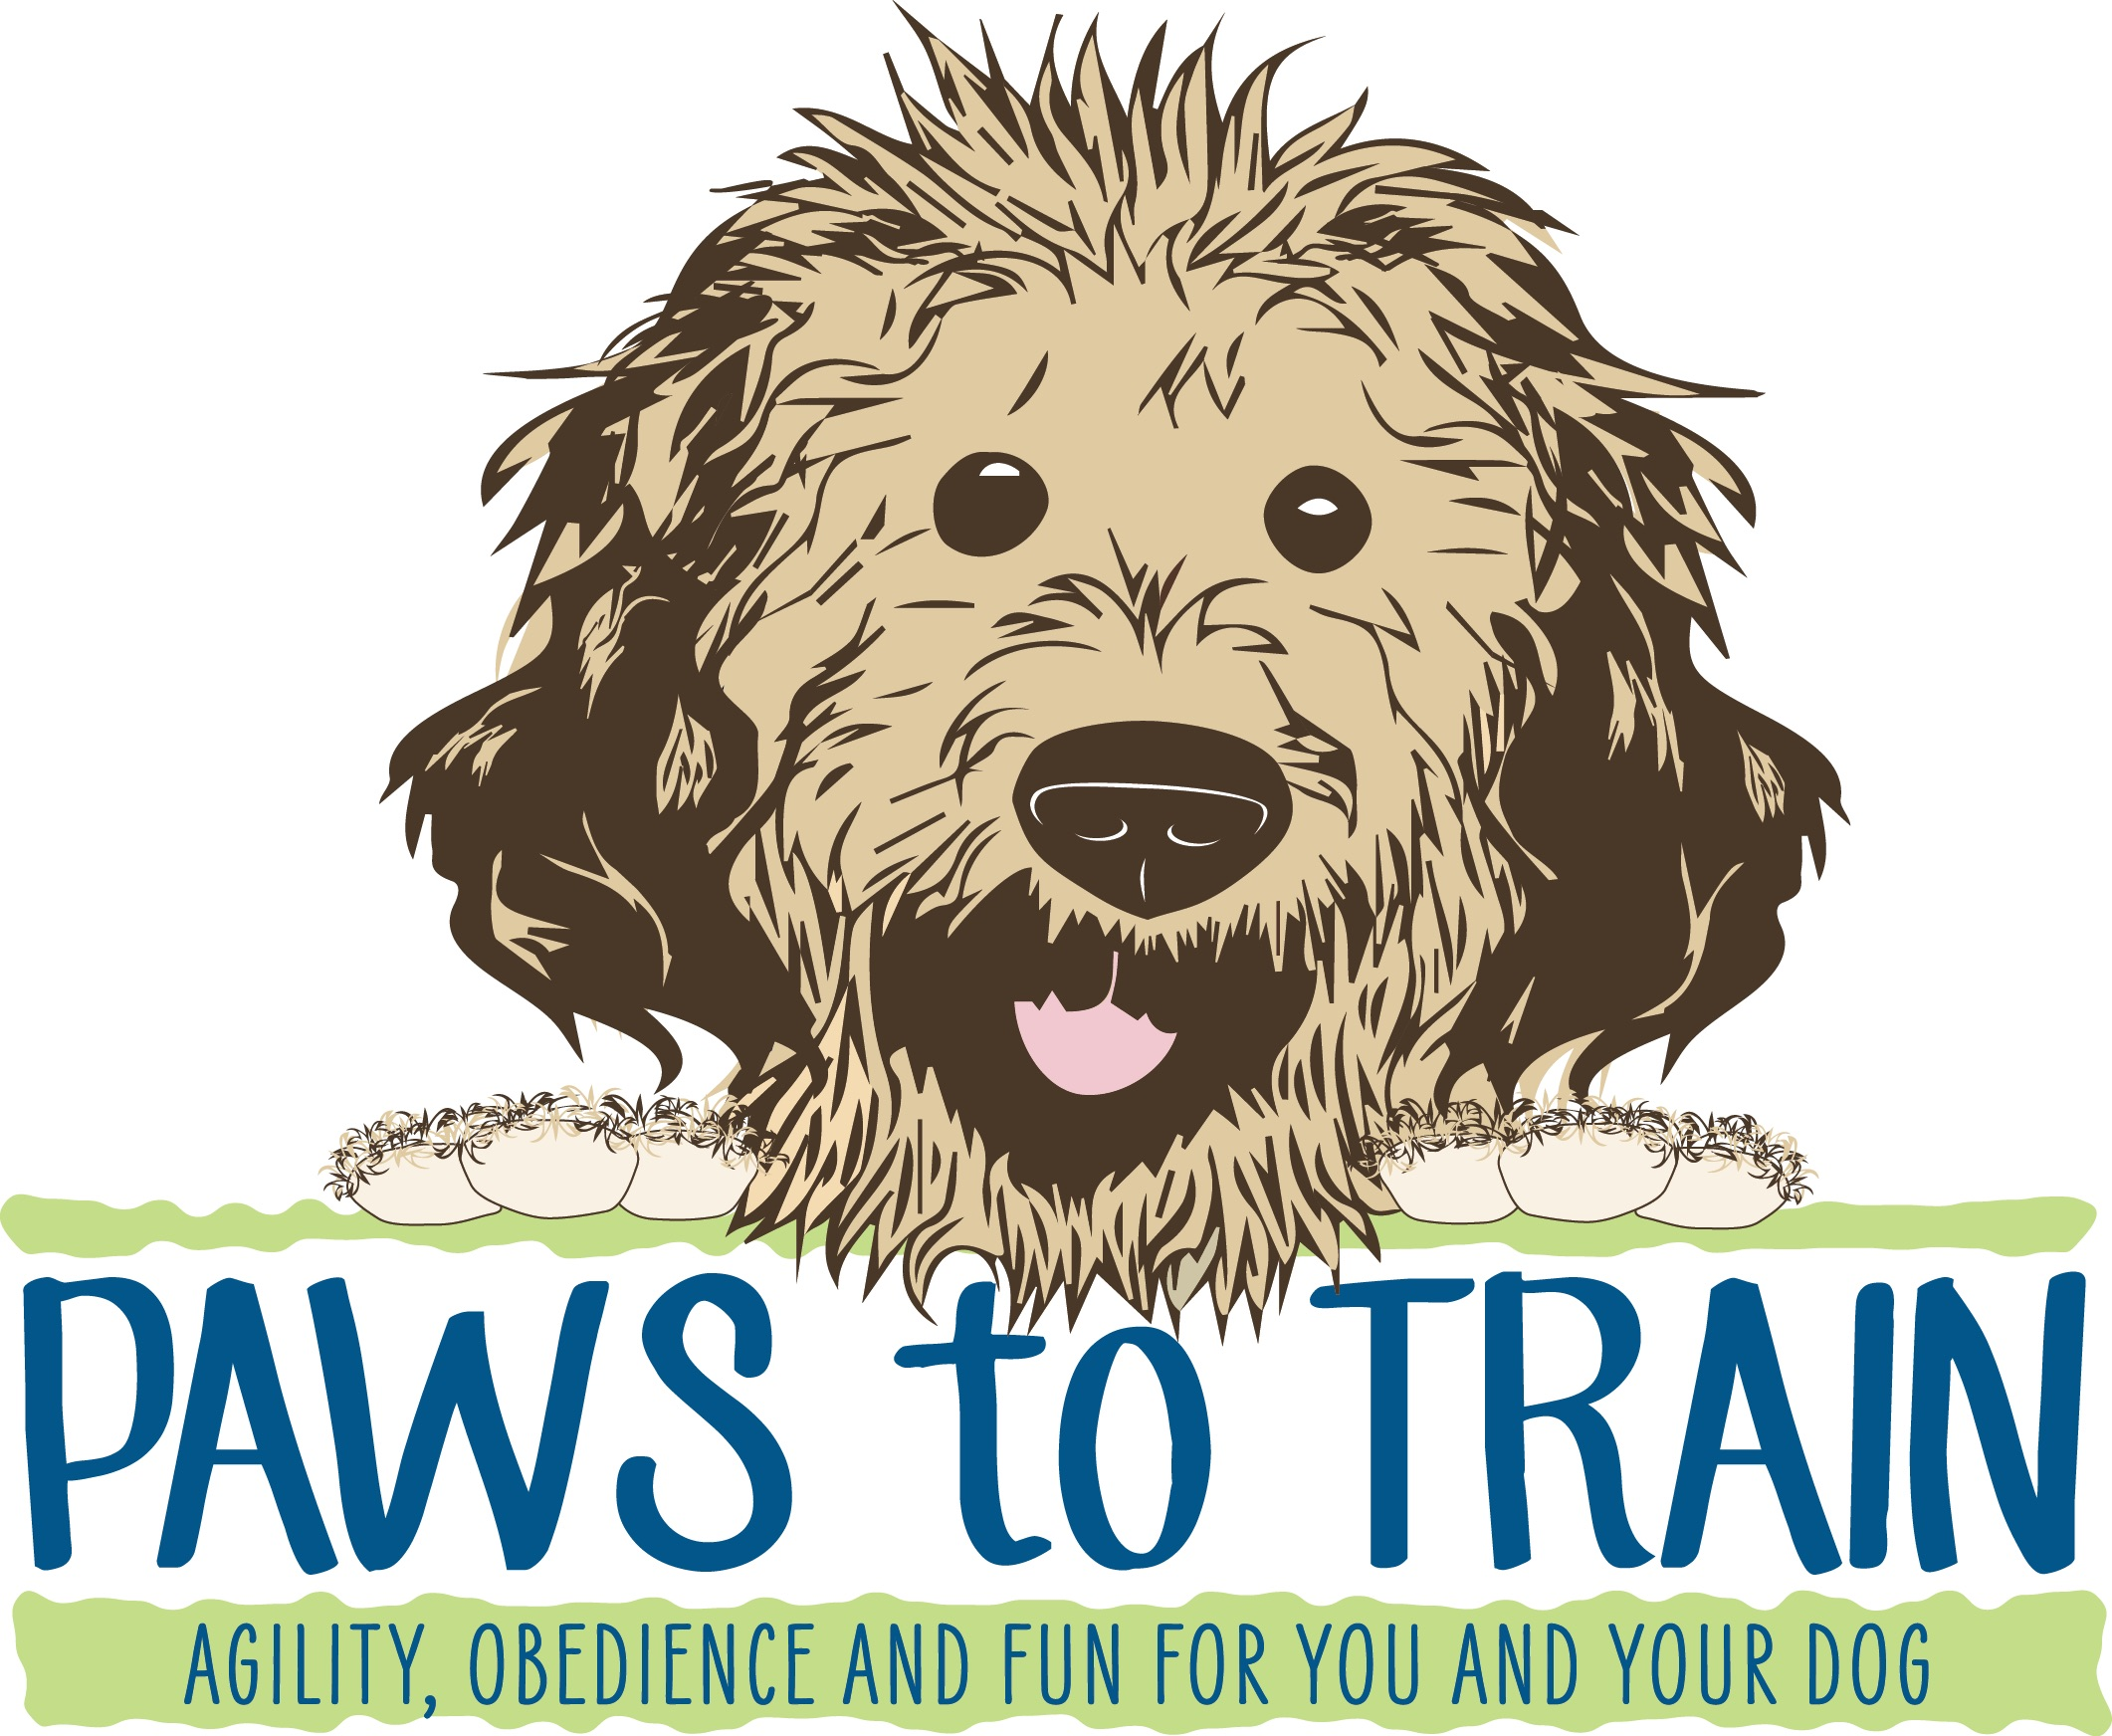 Paws to Train